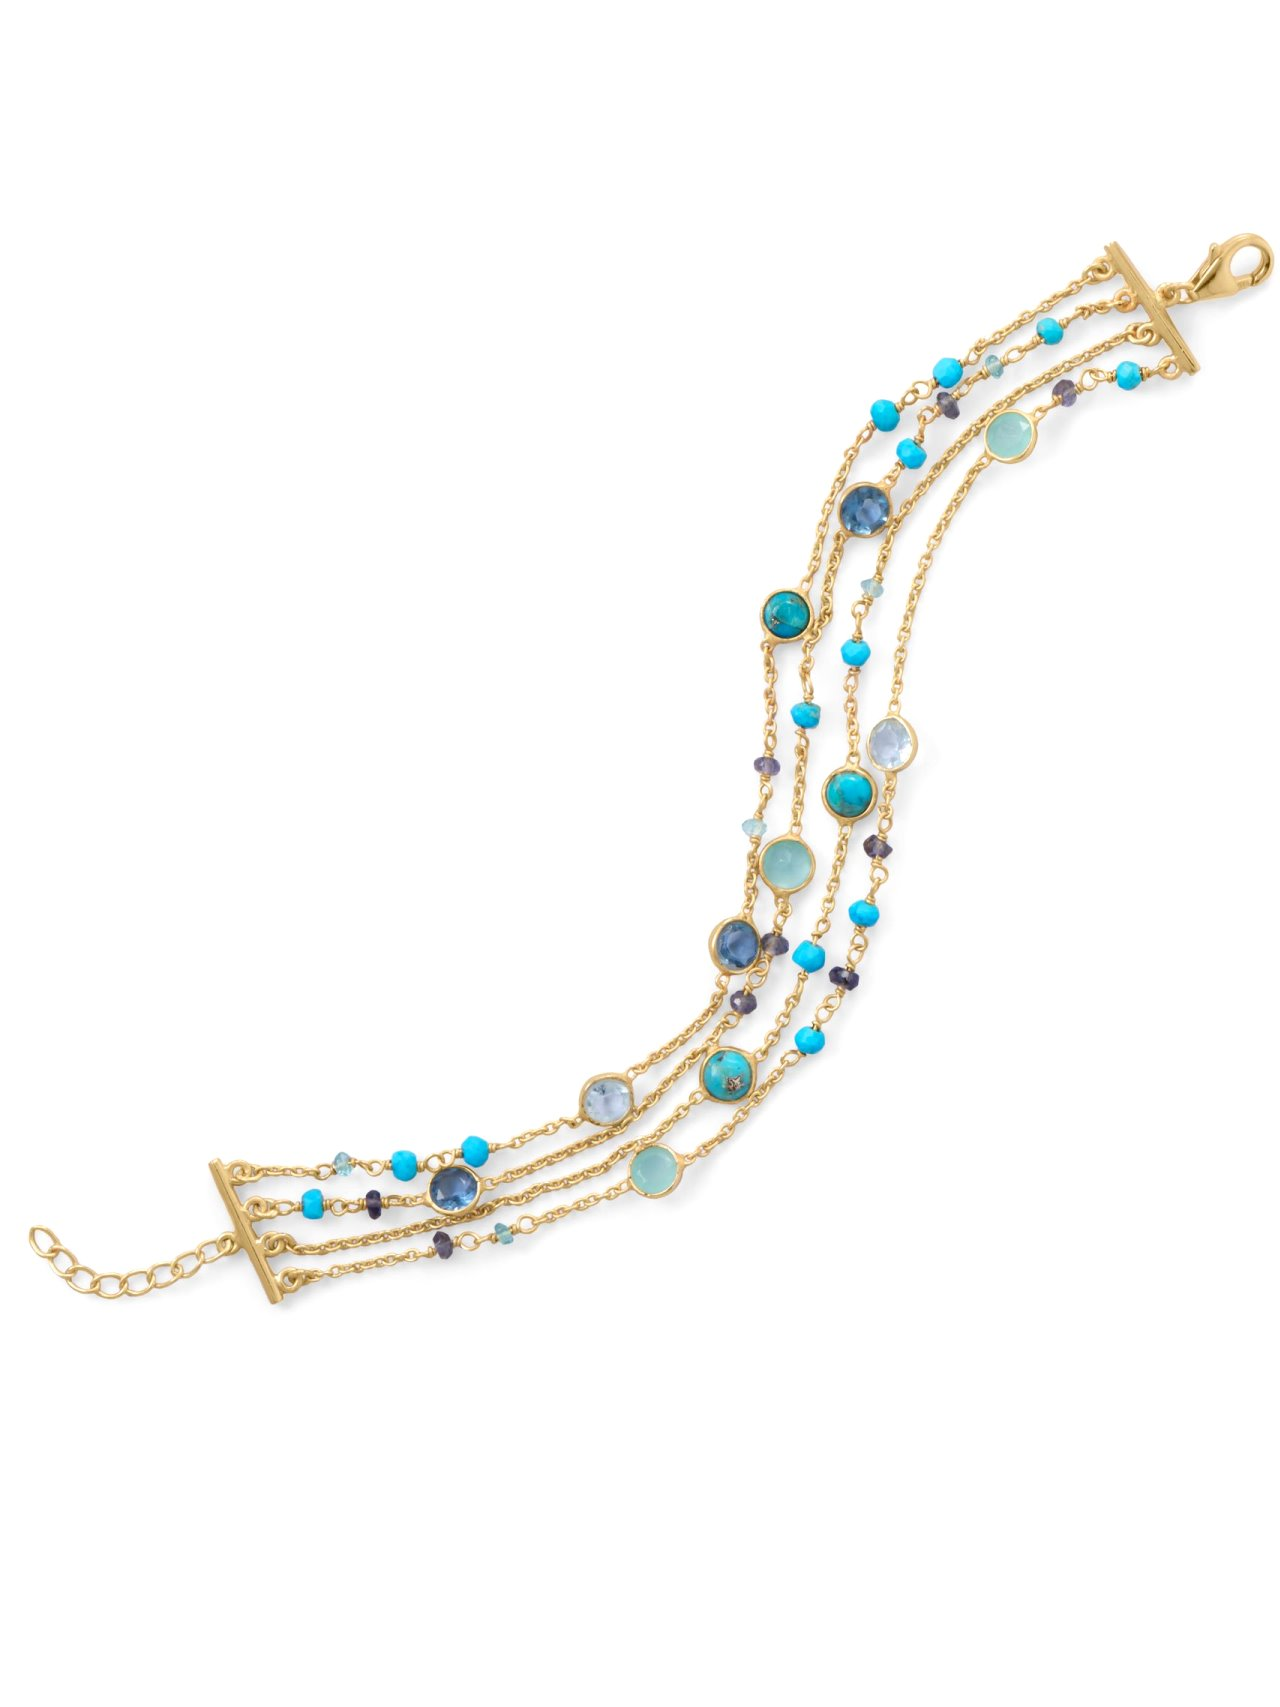 Four-Layer Chain Bracelet Multiple Gemstones Gold-plated Sterling Silver by unknown